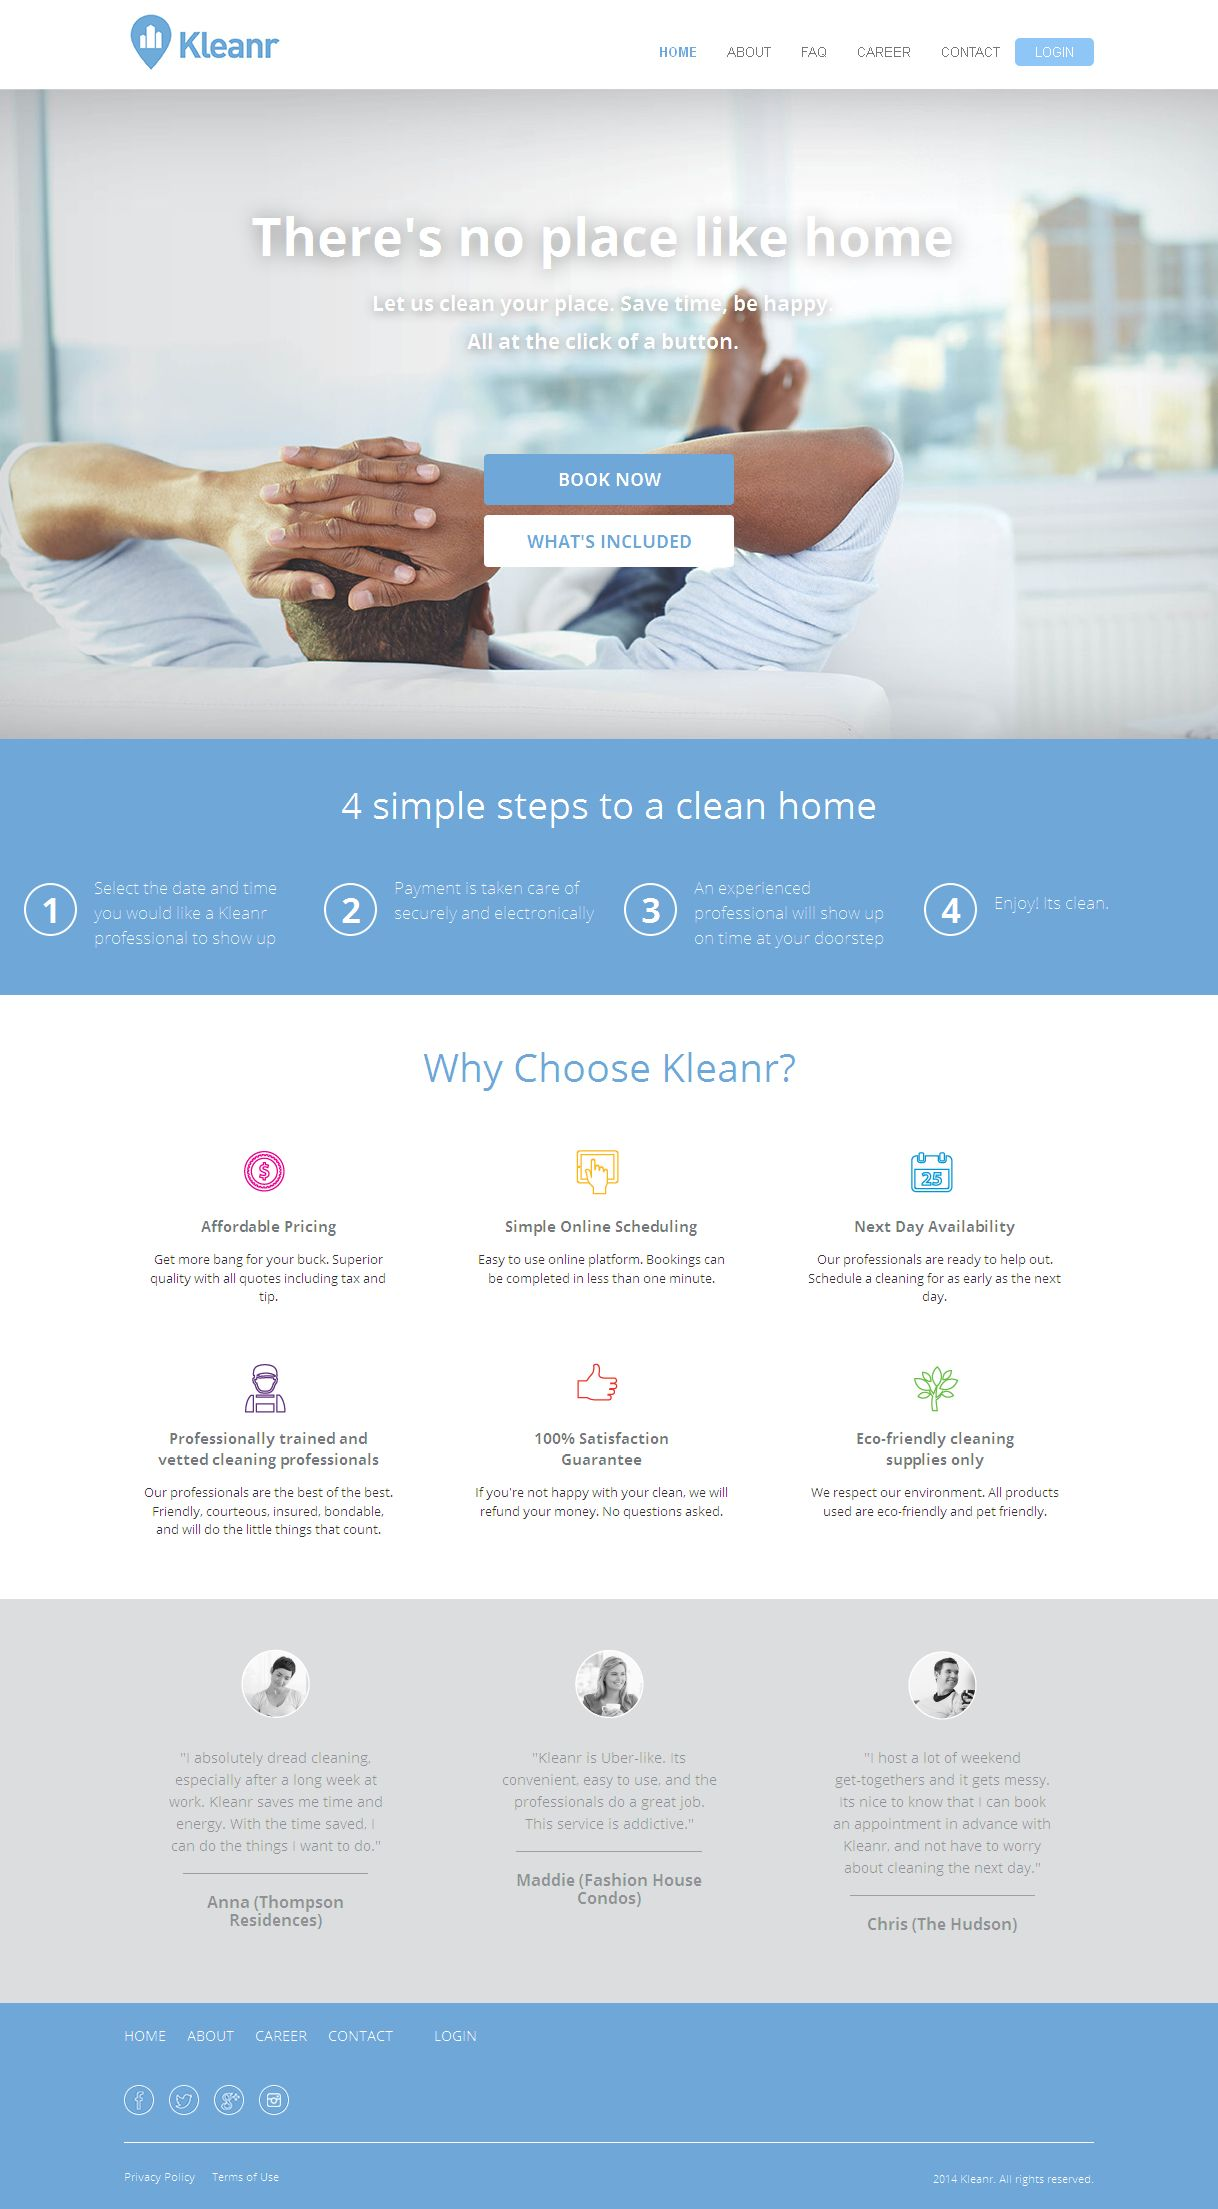 A CakePHP Based Website for Home Cleaning Services